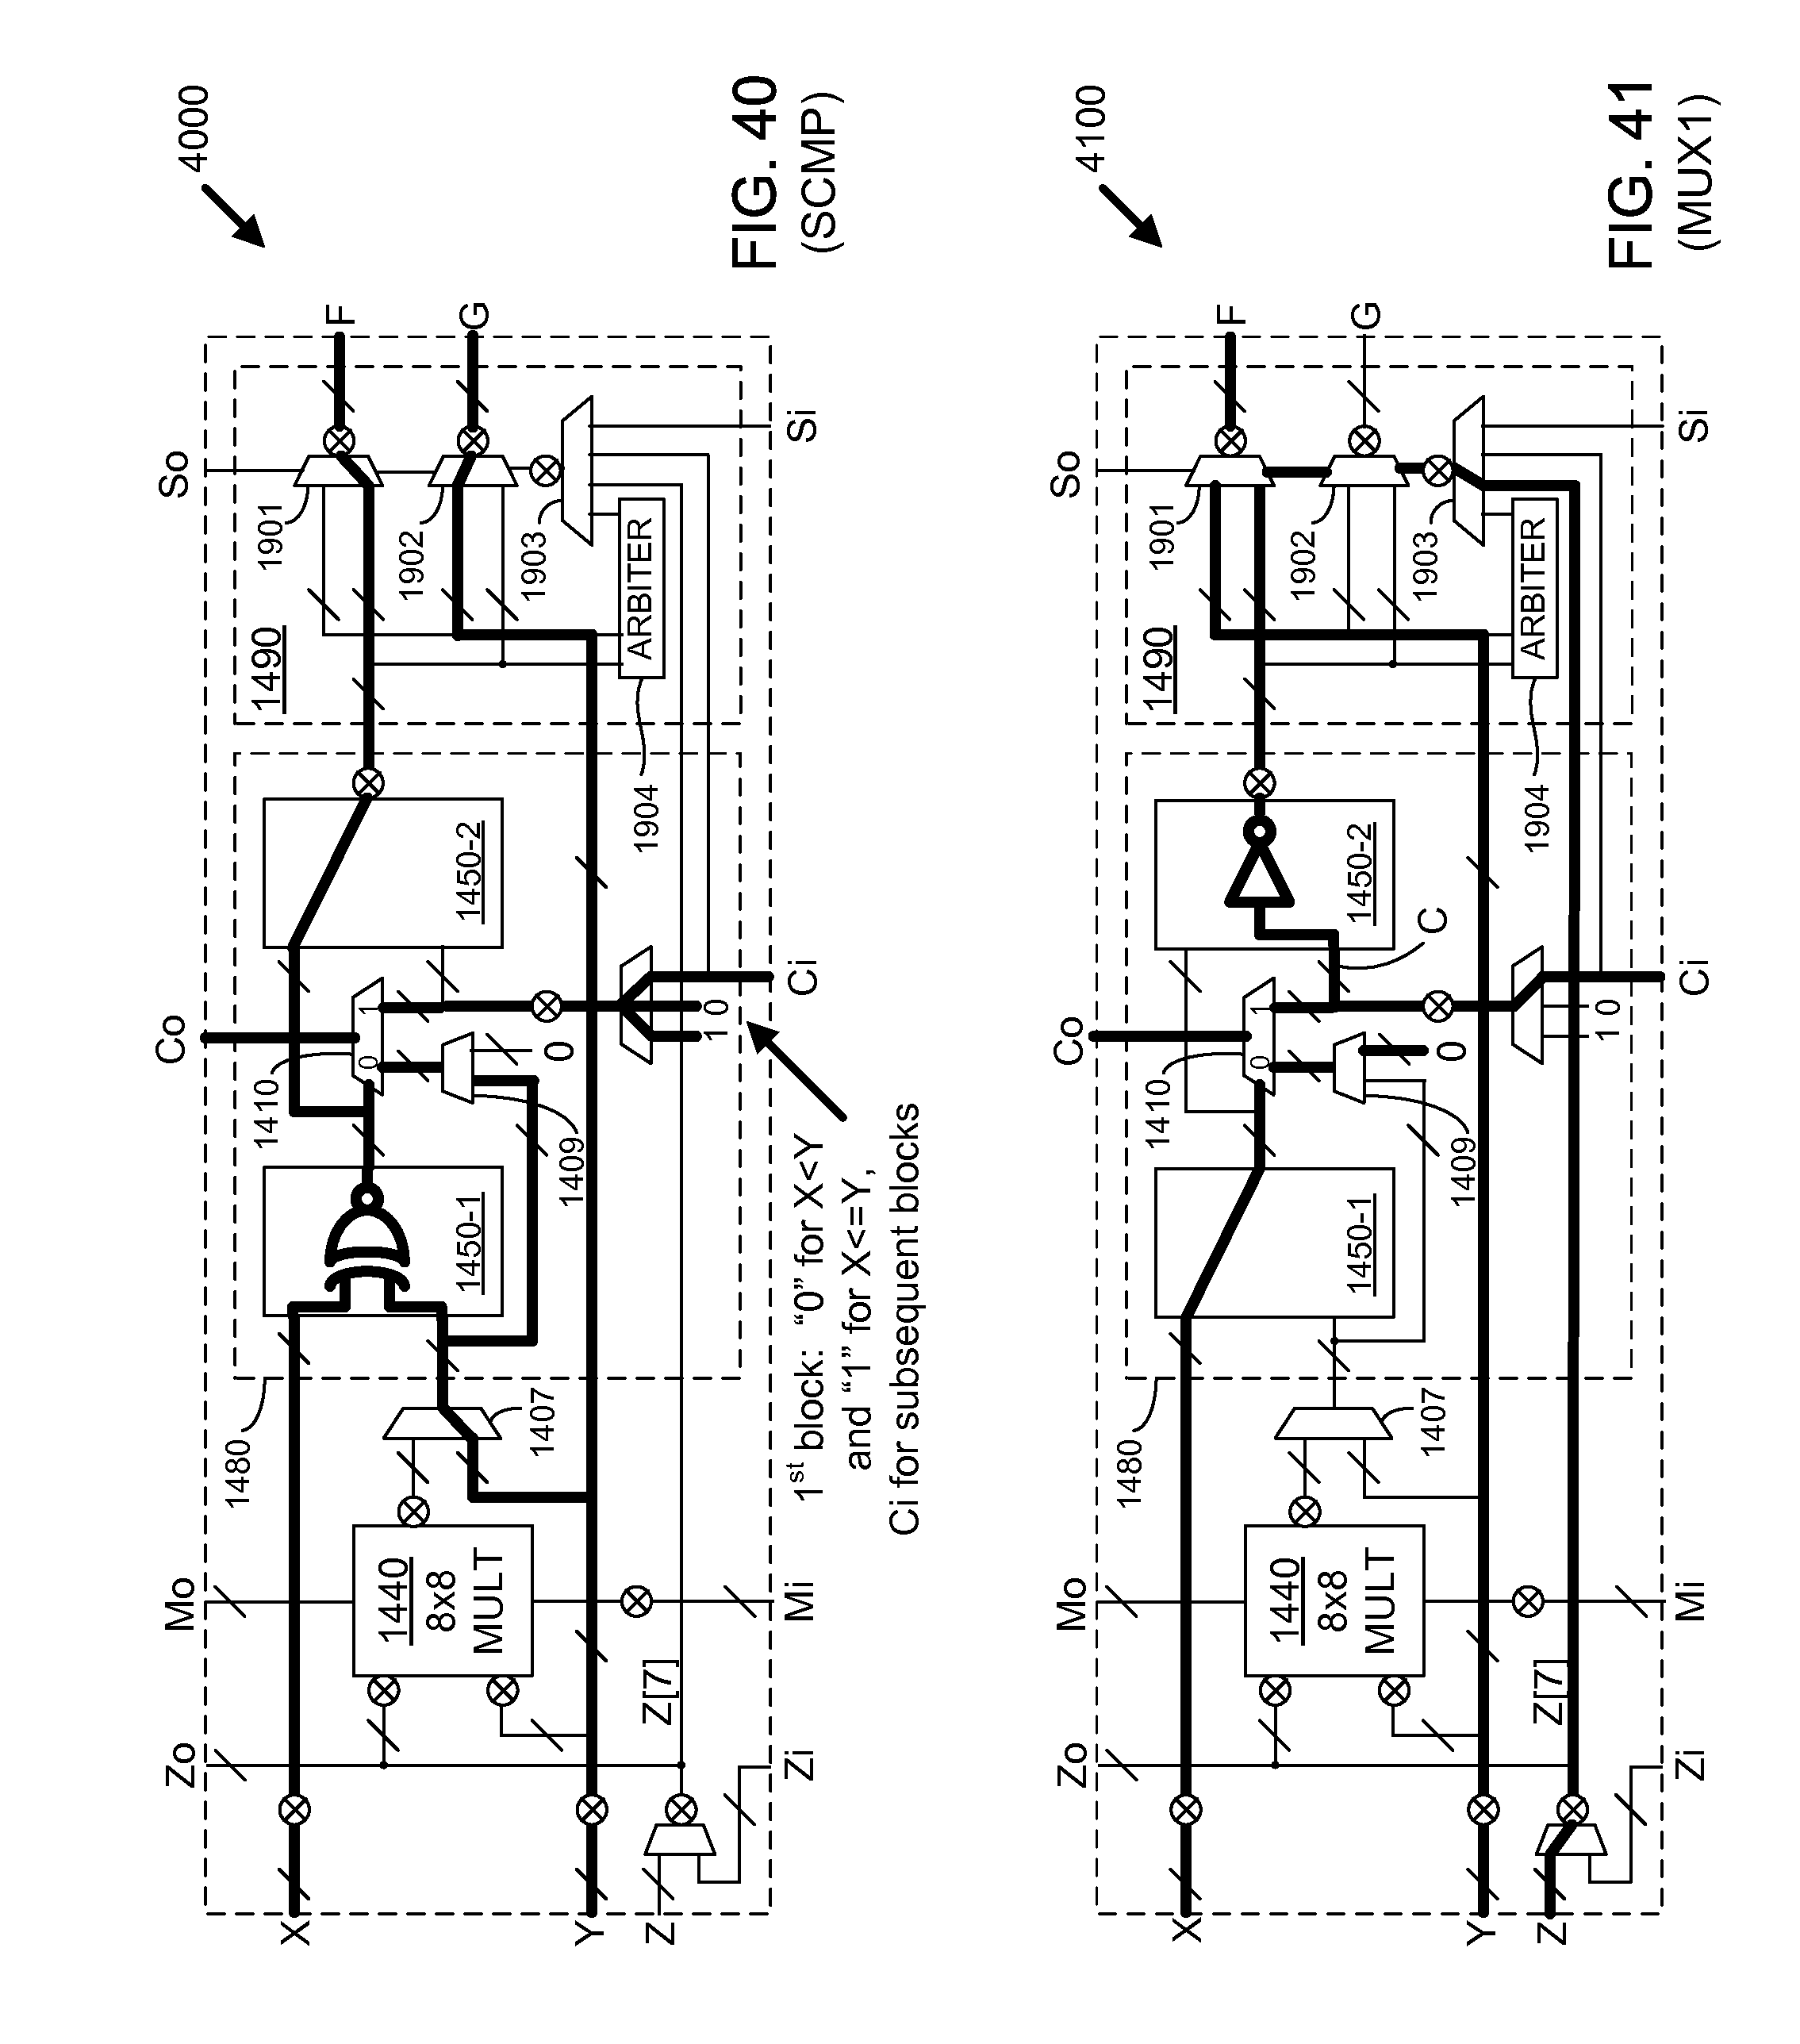 Patent Us7948265 Circuits For Replicating Self Timed Logic Adder Circuit I Have Successfully Drawn 8 Bit Full Drawing